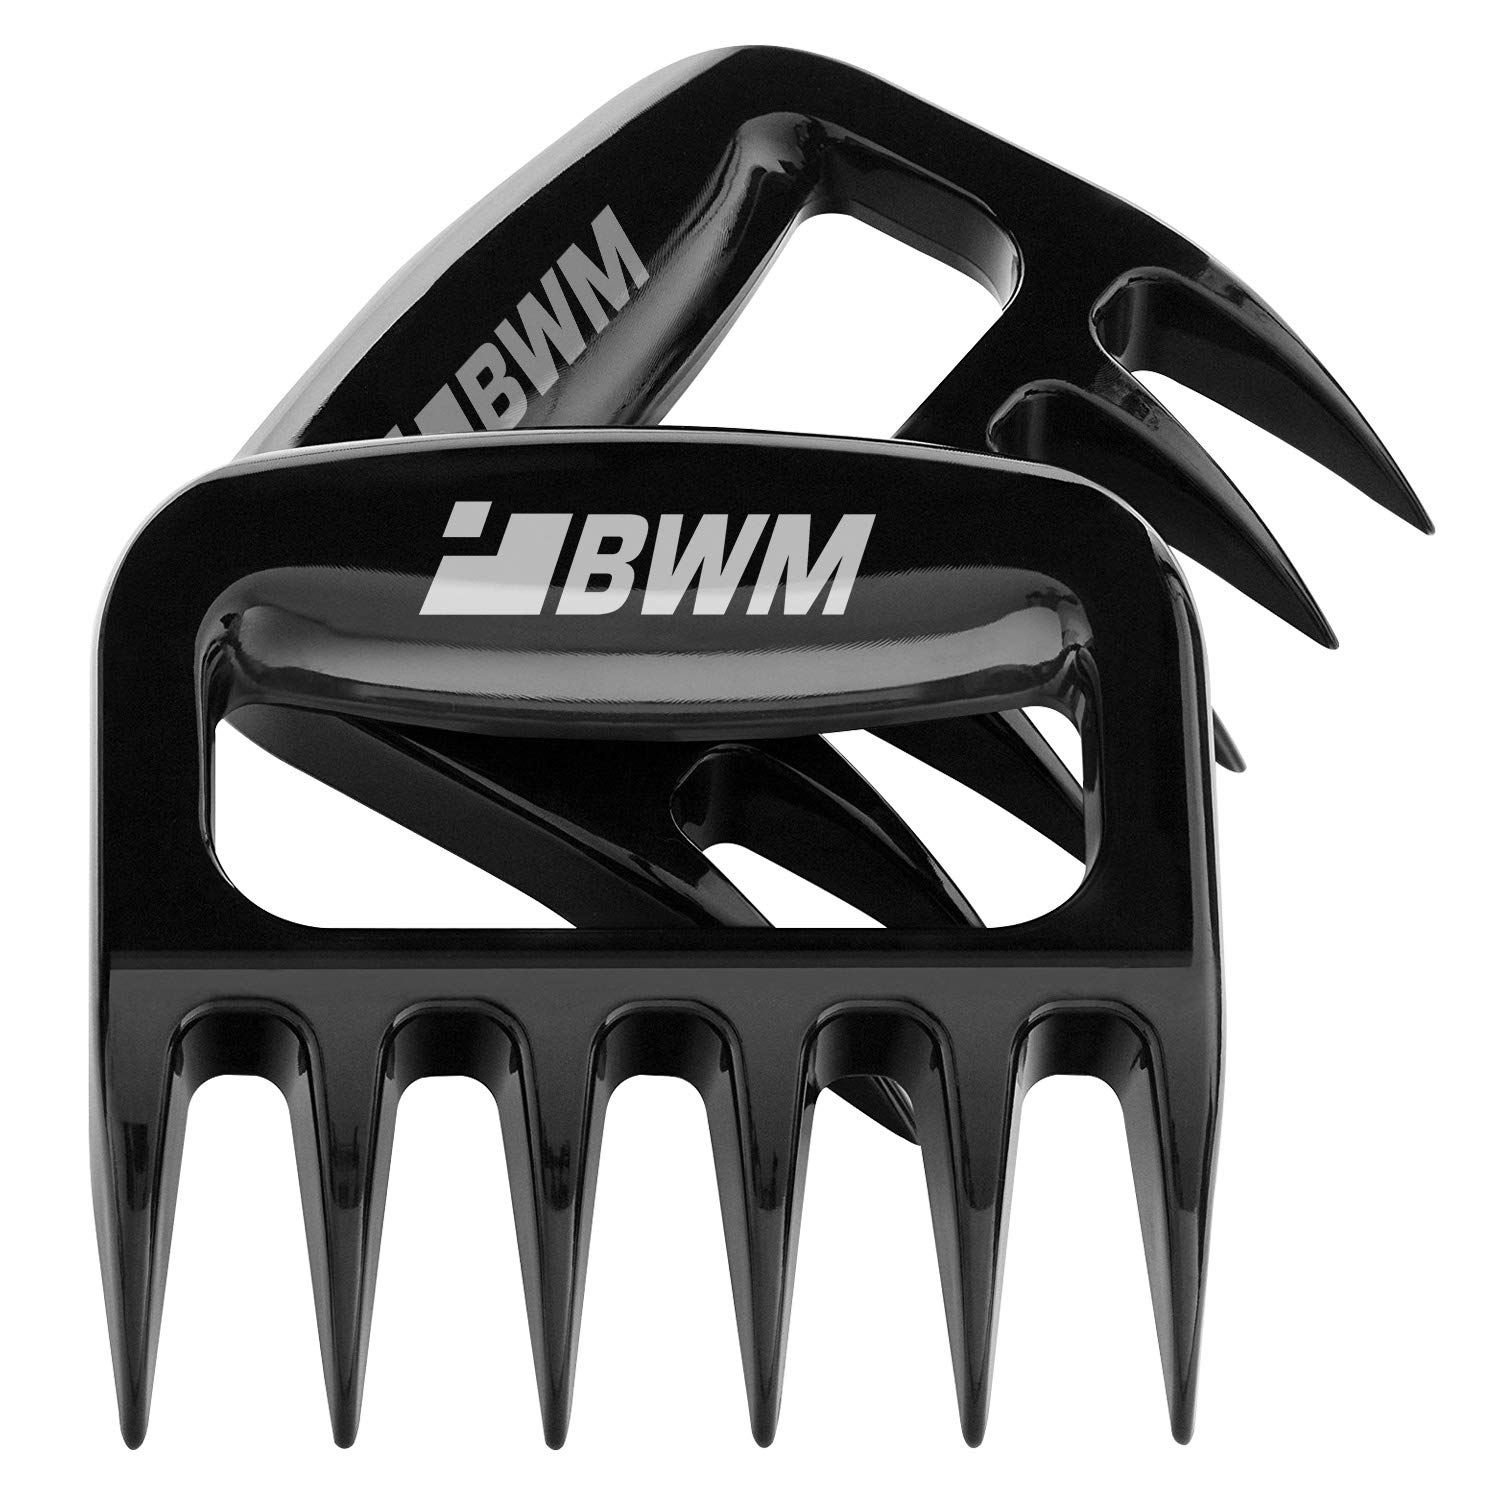 Meat Shredder Claws For Pulled Pork, YBWM Solid and Ultra-Sharp Blades BBQ Tool Meat Handler Forks for Shredding Handling & Carving Food, Barbecue Pulling Pork Shredder Claw Set of 2( Black) 71OcWKAOBYL